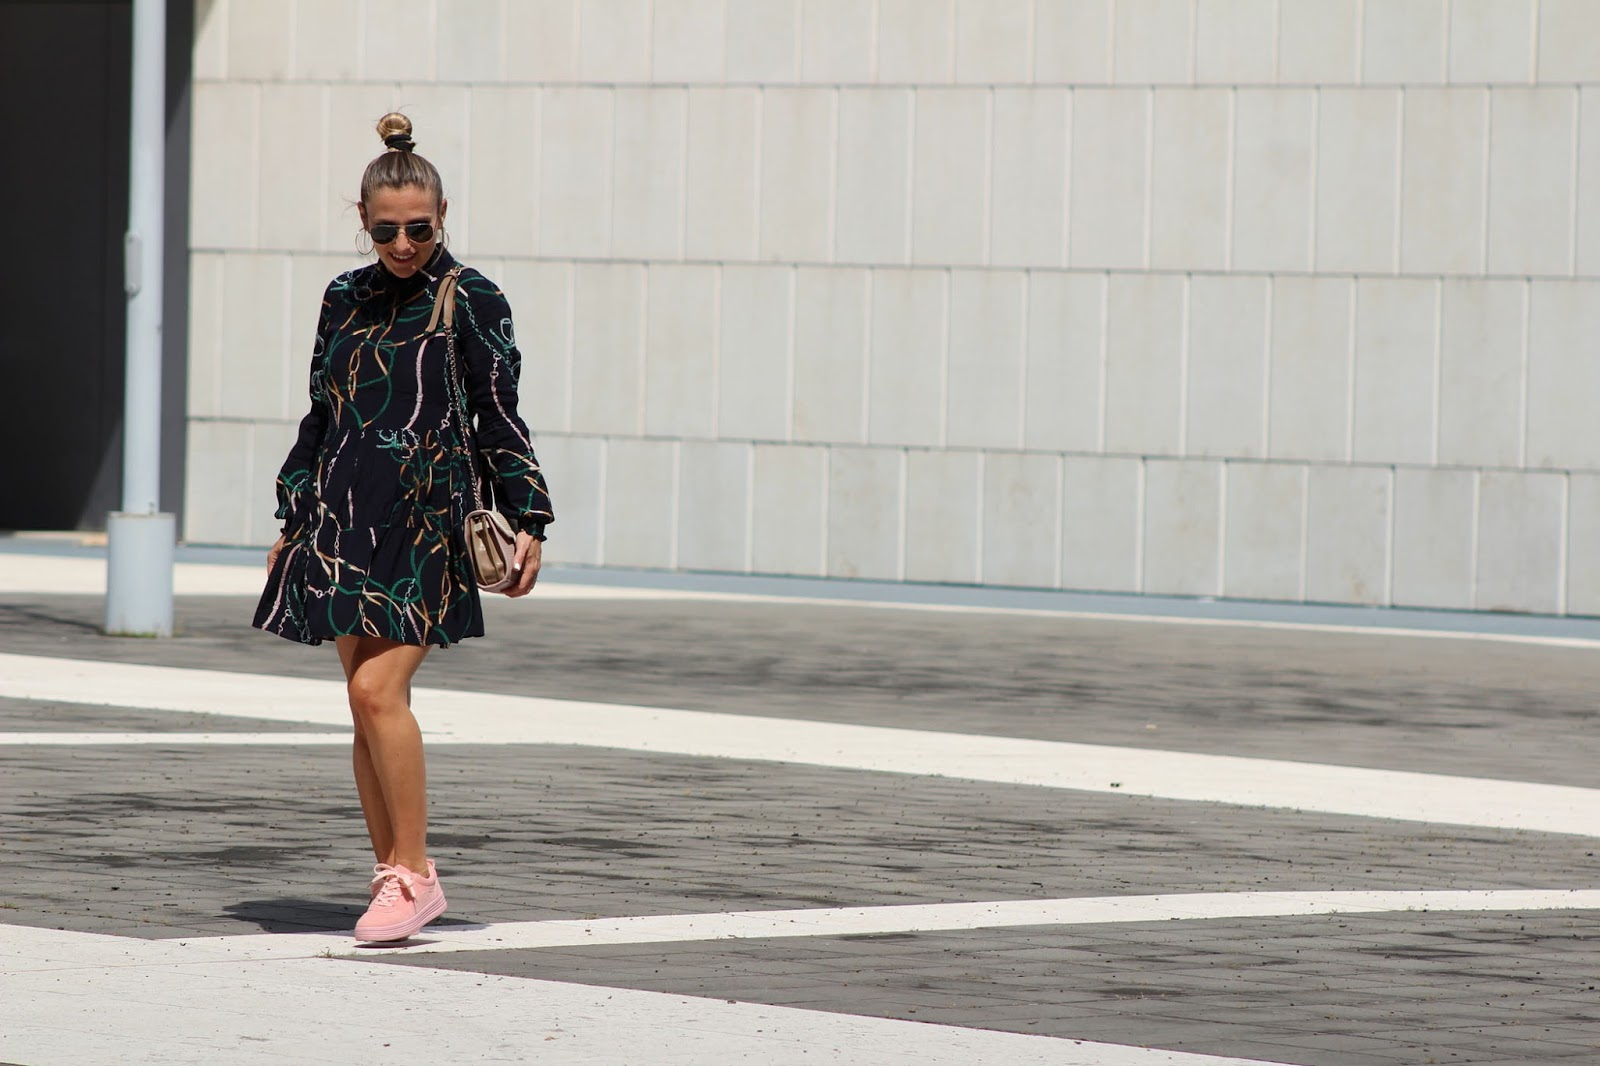 Abbinare minidress e sneakers - Rosegal - Eniwhere Fashion